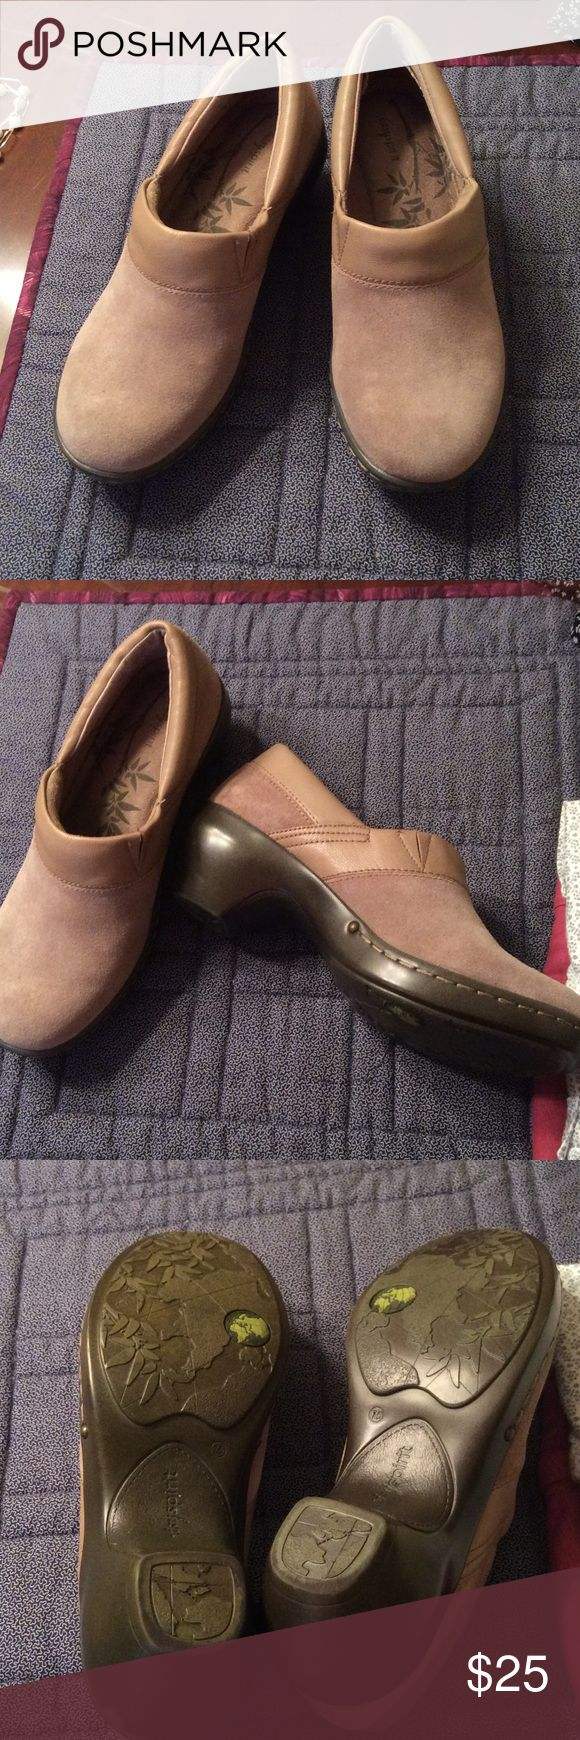 Easy Spirit suede clogs. Gently used comfort shoes, taupe, medium heel and very easy to wear. One little scuff as shown in 4th pic. They look more tannish-gray in person. Easy Spirit Shoes Mules & Clogs